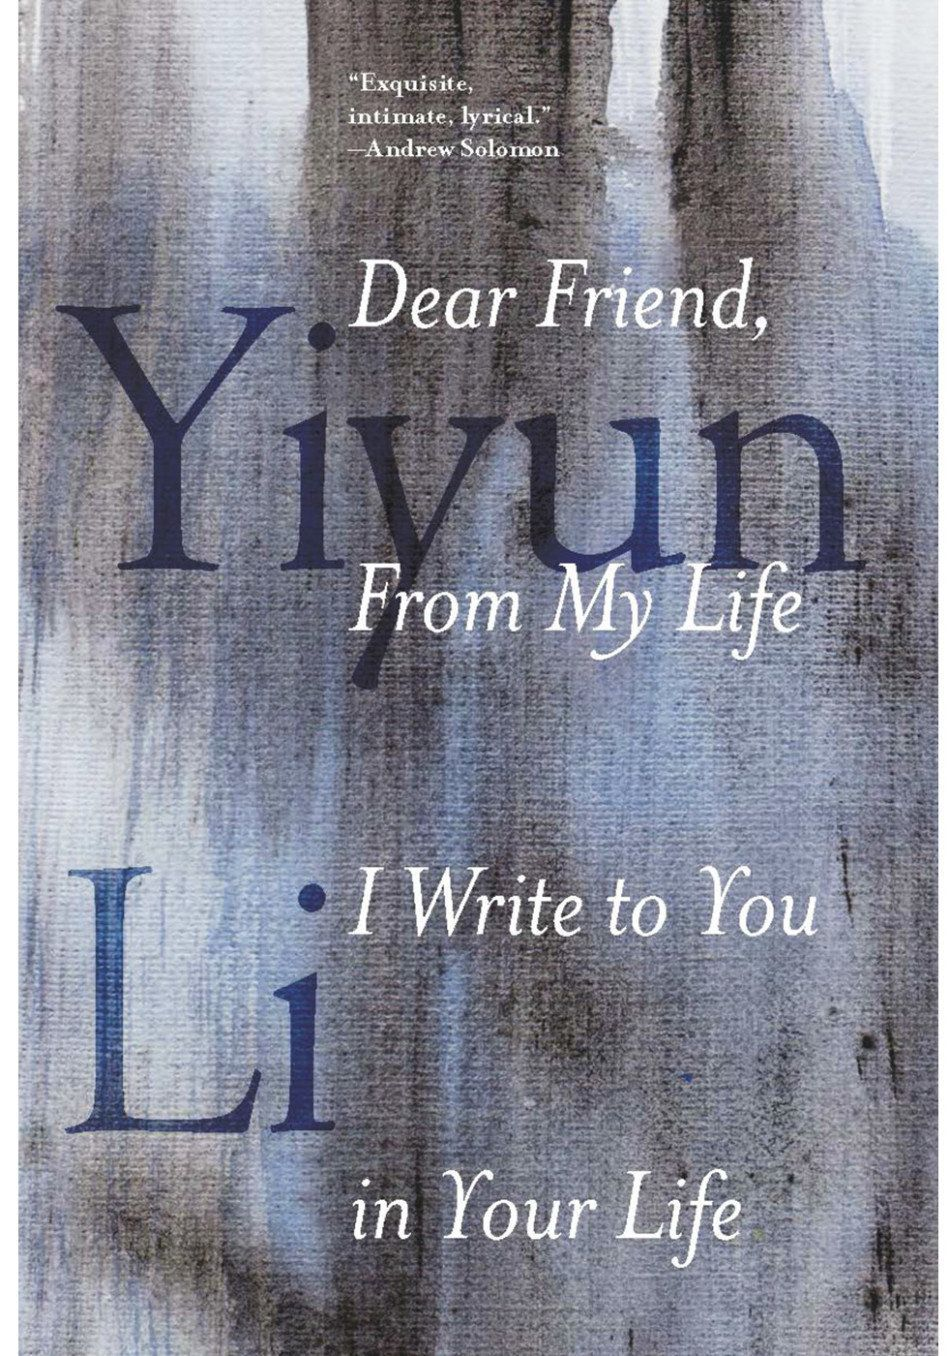 <i>Dear Friend, from My Life, I Write to You in Your Life </i>was published Feb. 21.